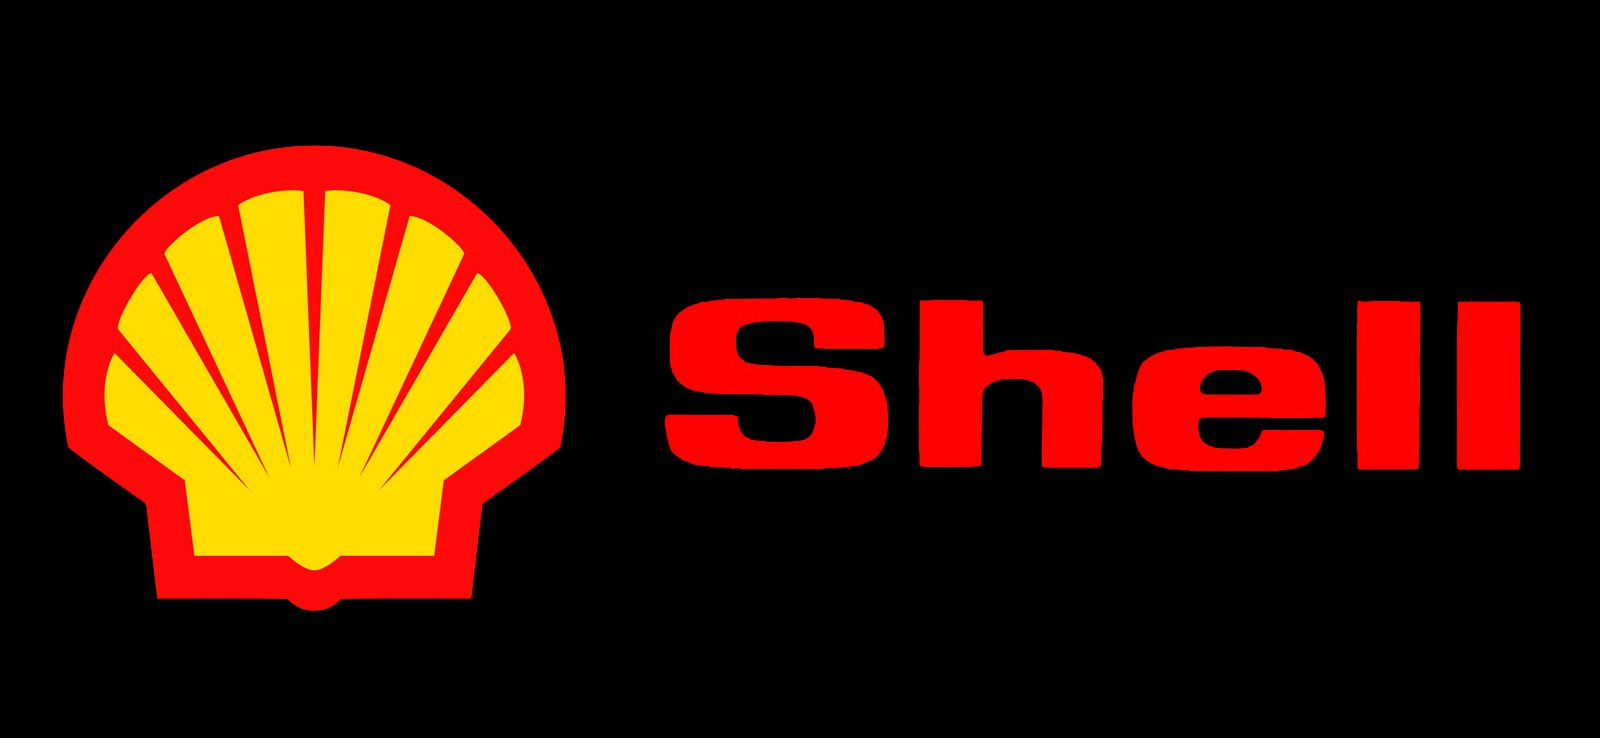 Meaning Shell logo and symbol.